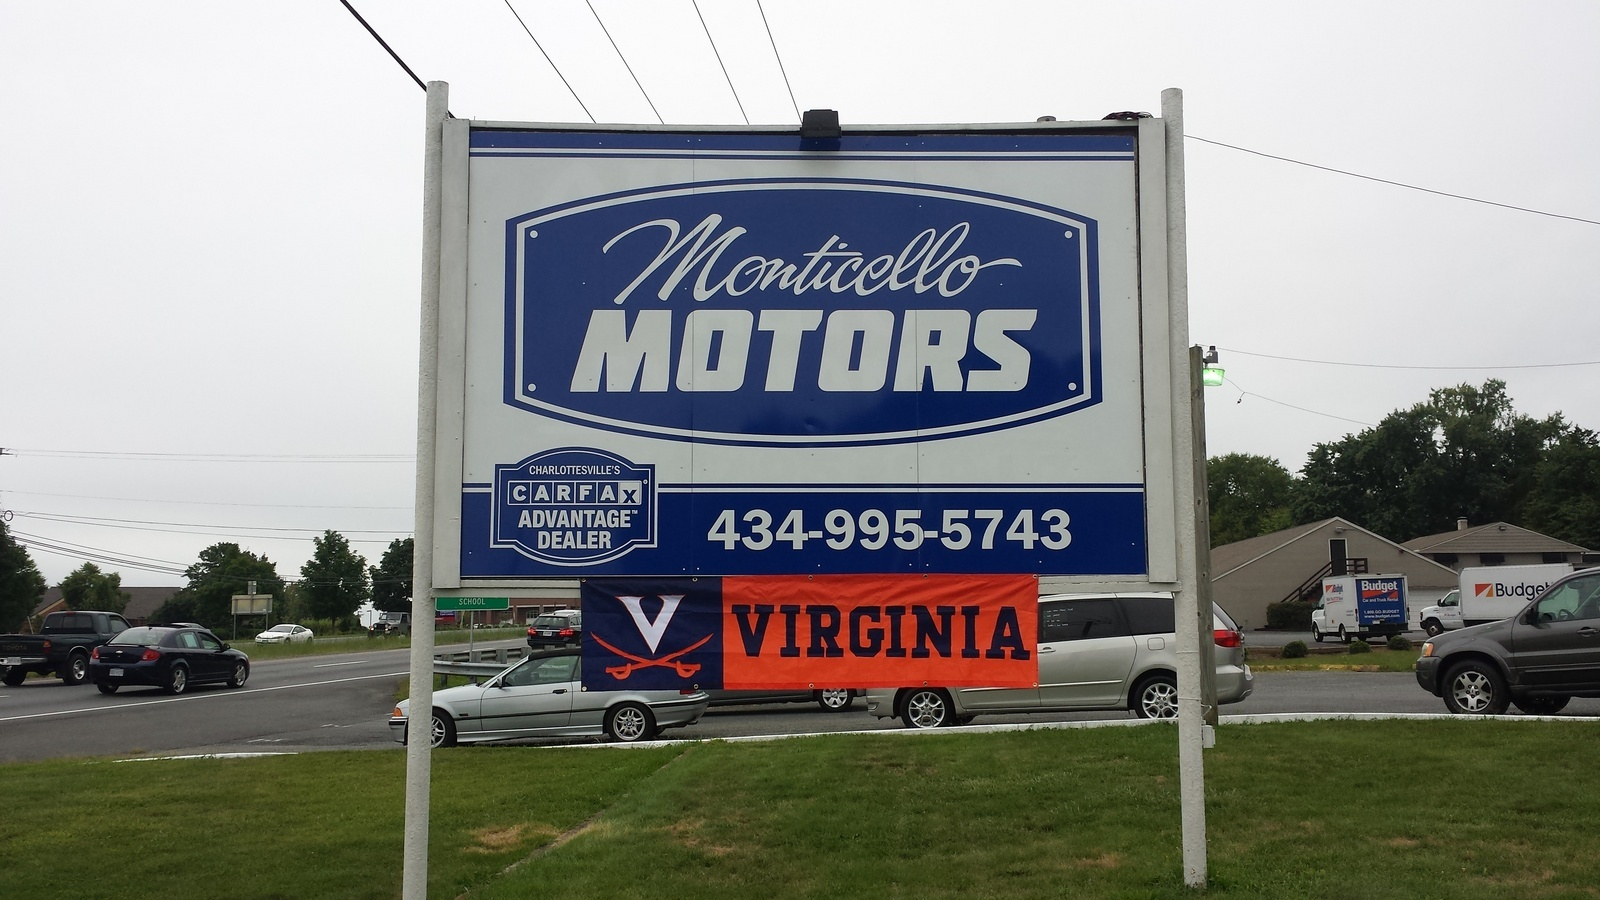 Monticello Motors Charlottesville Va Read Consumer Reviews Browse Used And New Cars For Sale